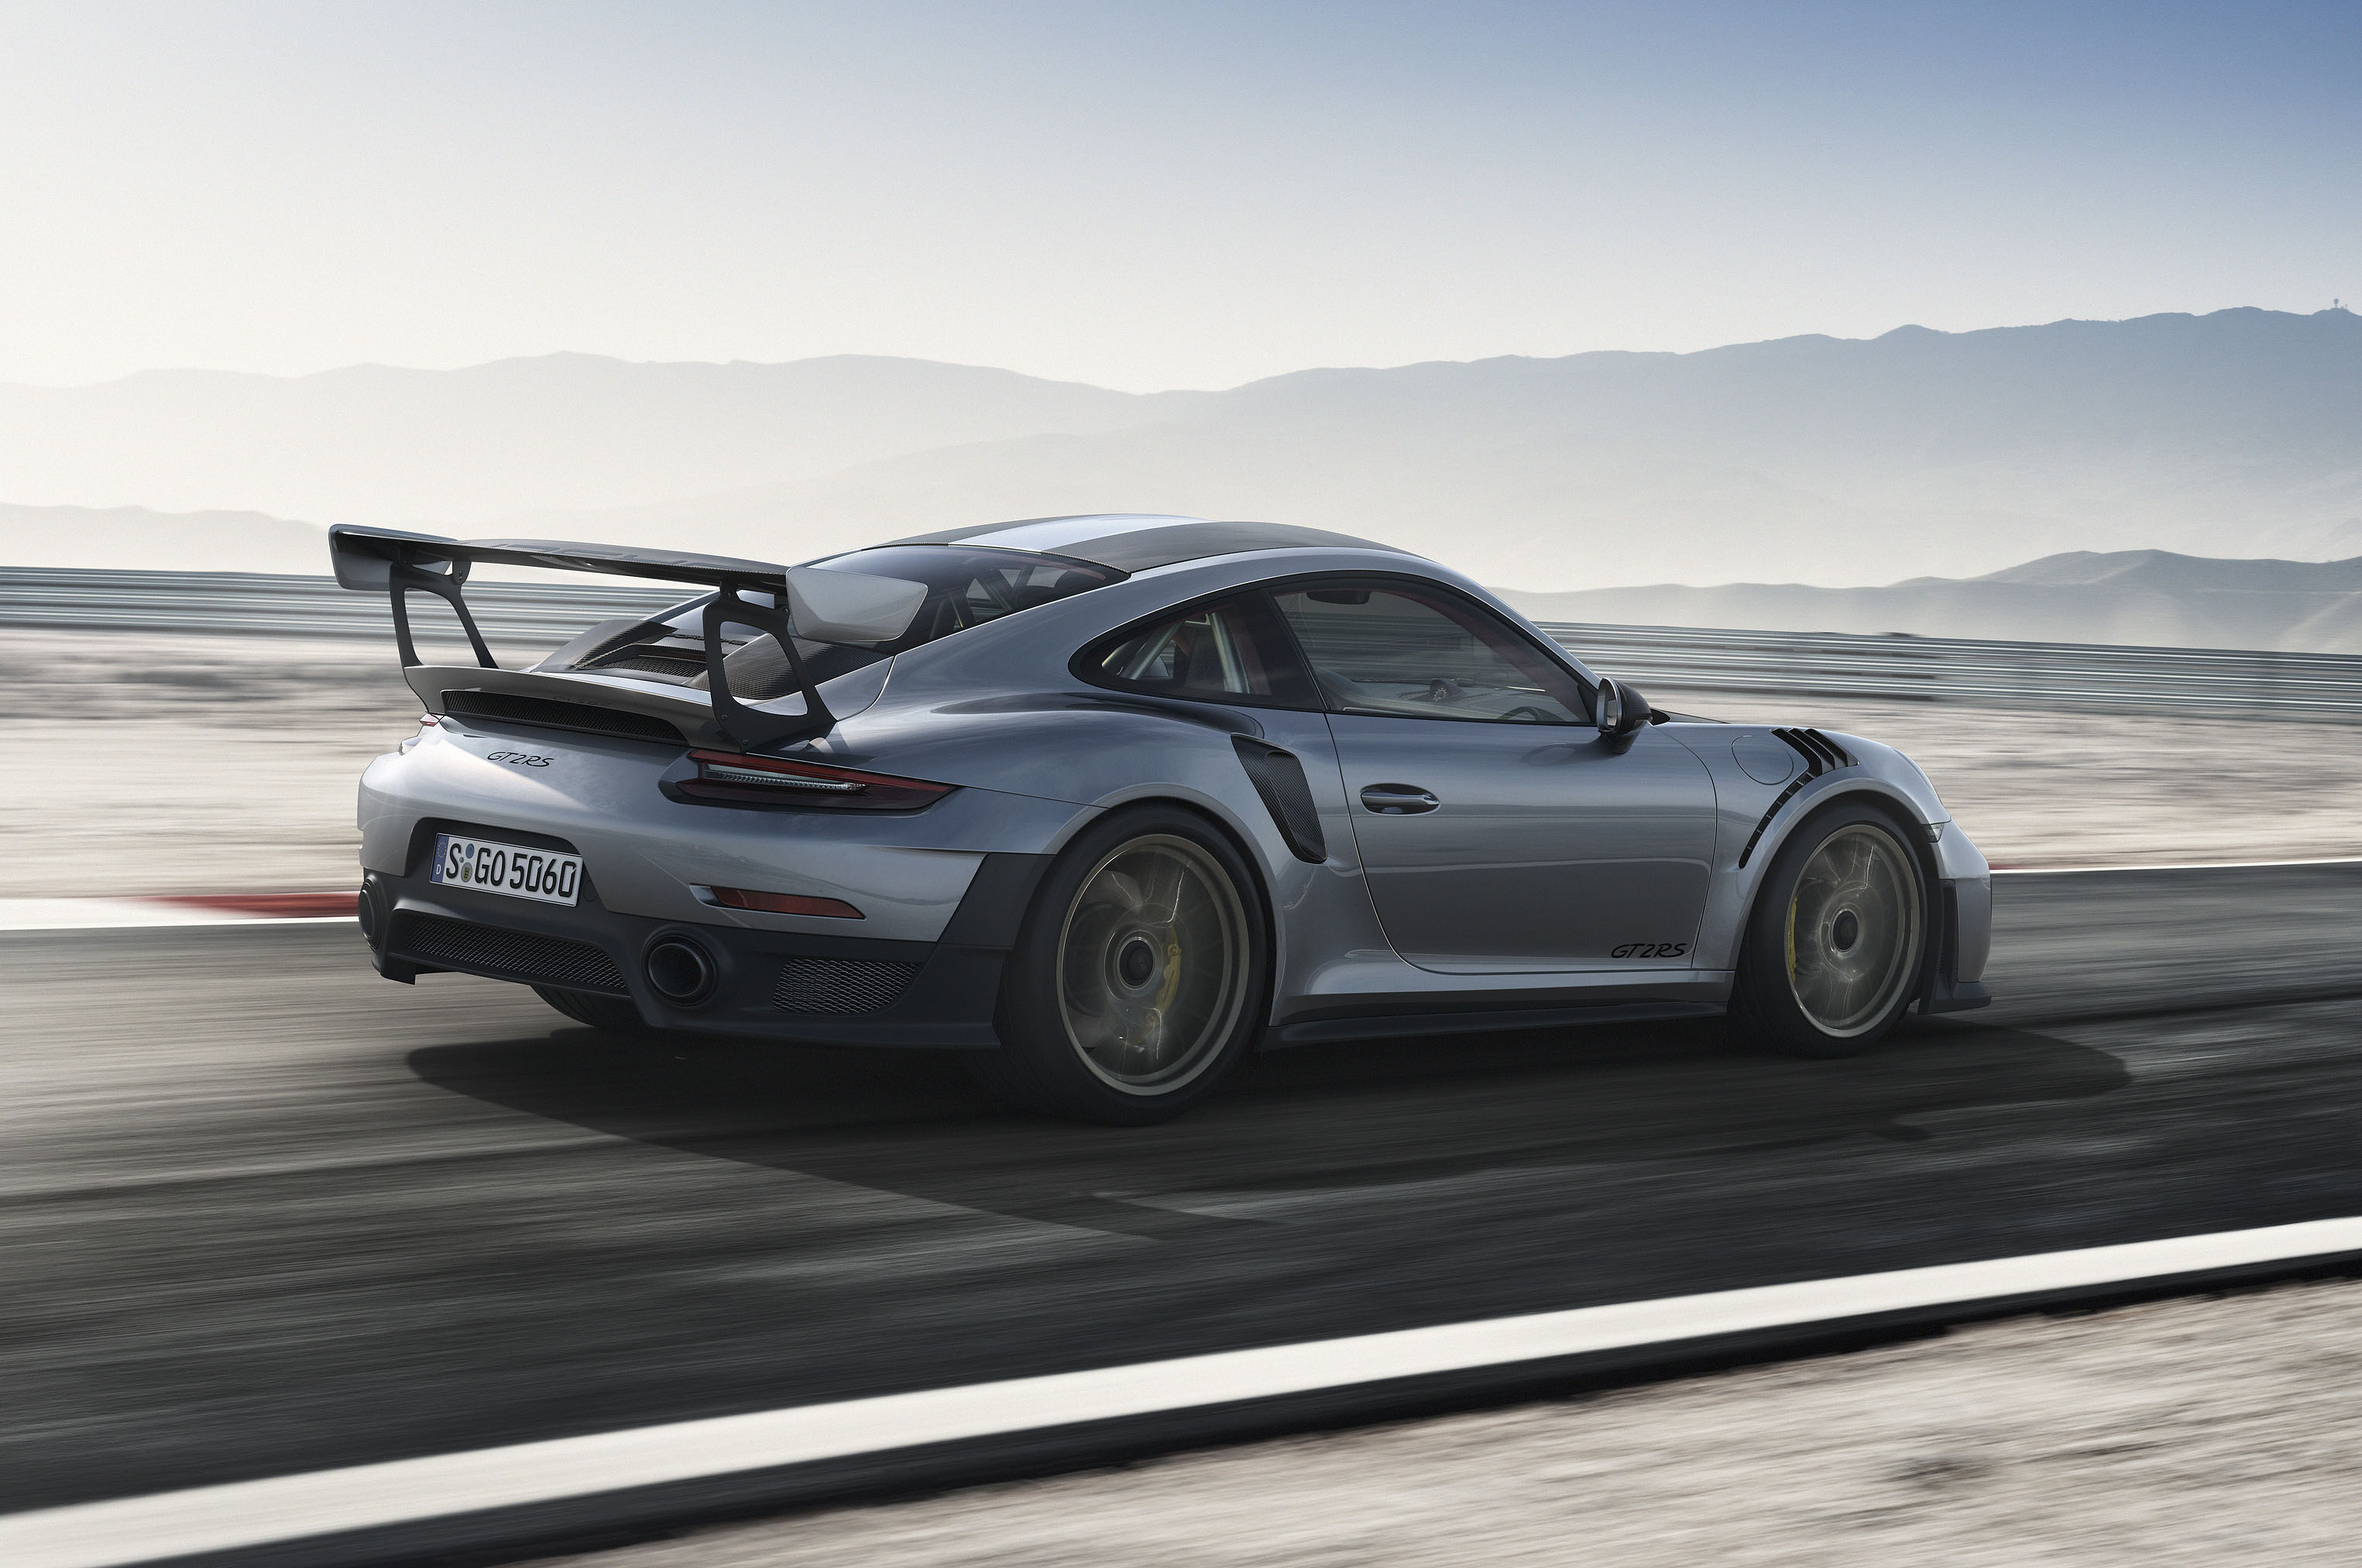 2018-Porsche-911-GT2-RS-rear Extraordinary Porsche 911 Gt2 Rs Used Cars Trend